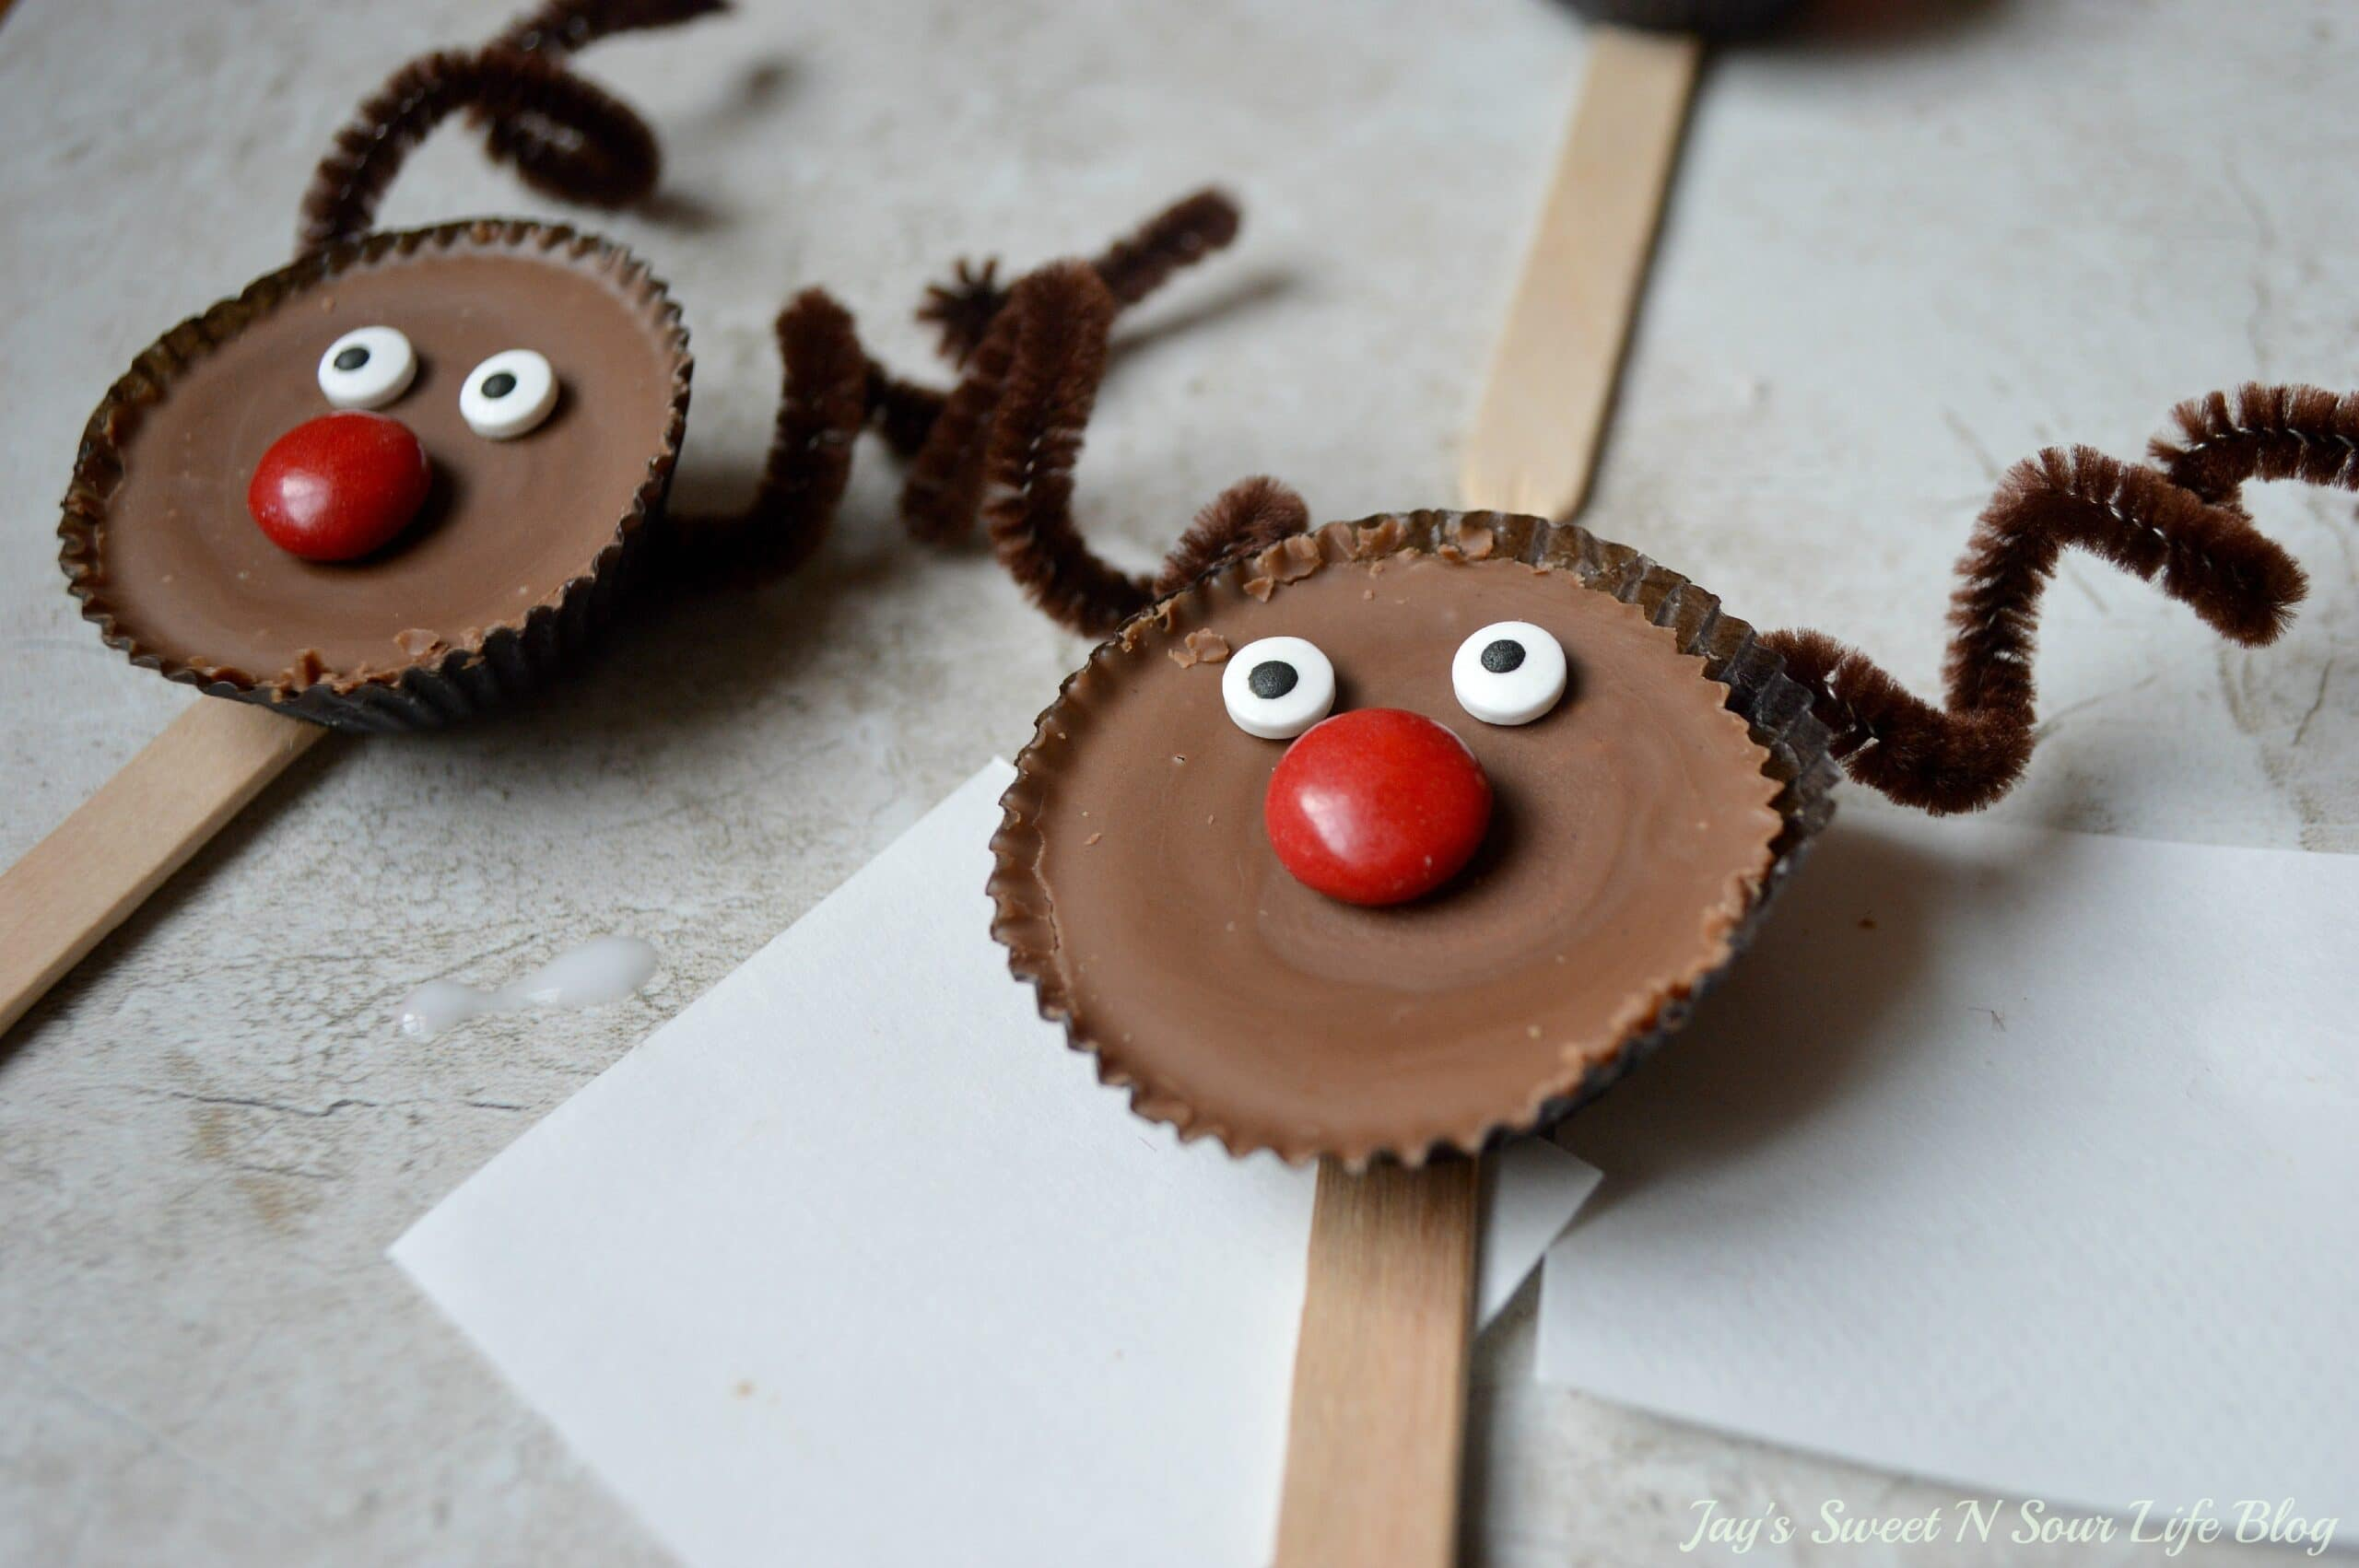 Edible Reindeer Step 9. Fun and easy to make, dash into the holiday season with an adorable Edible Rudolf. This Edible Christmas Craft is kid-friendly and perfect for holiday parties and gatherings.